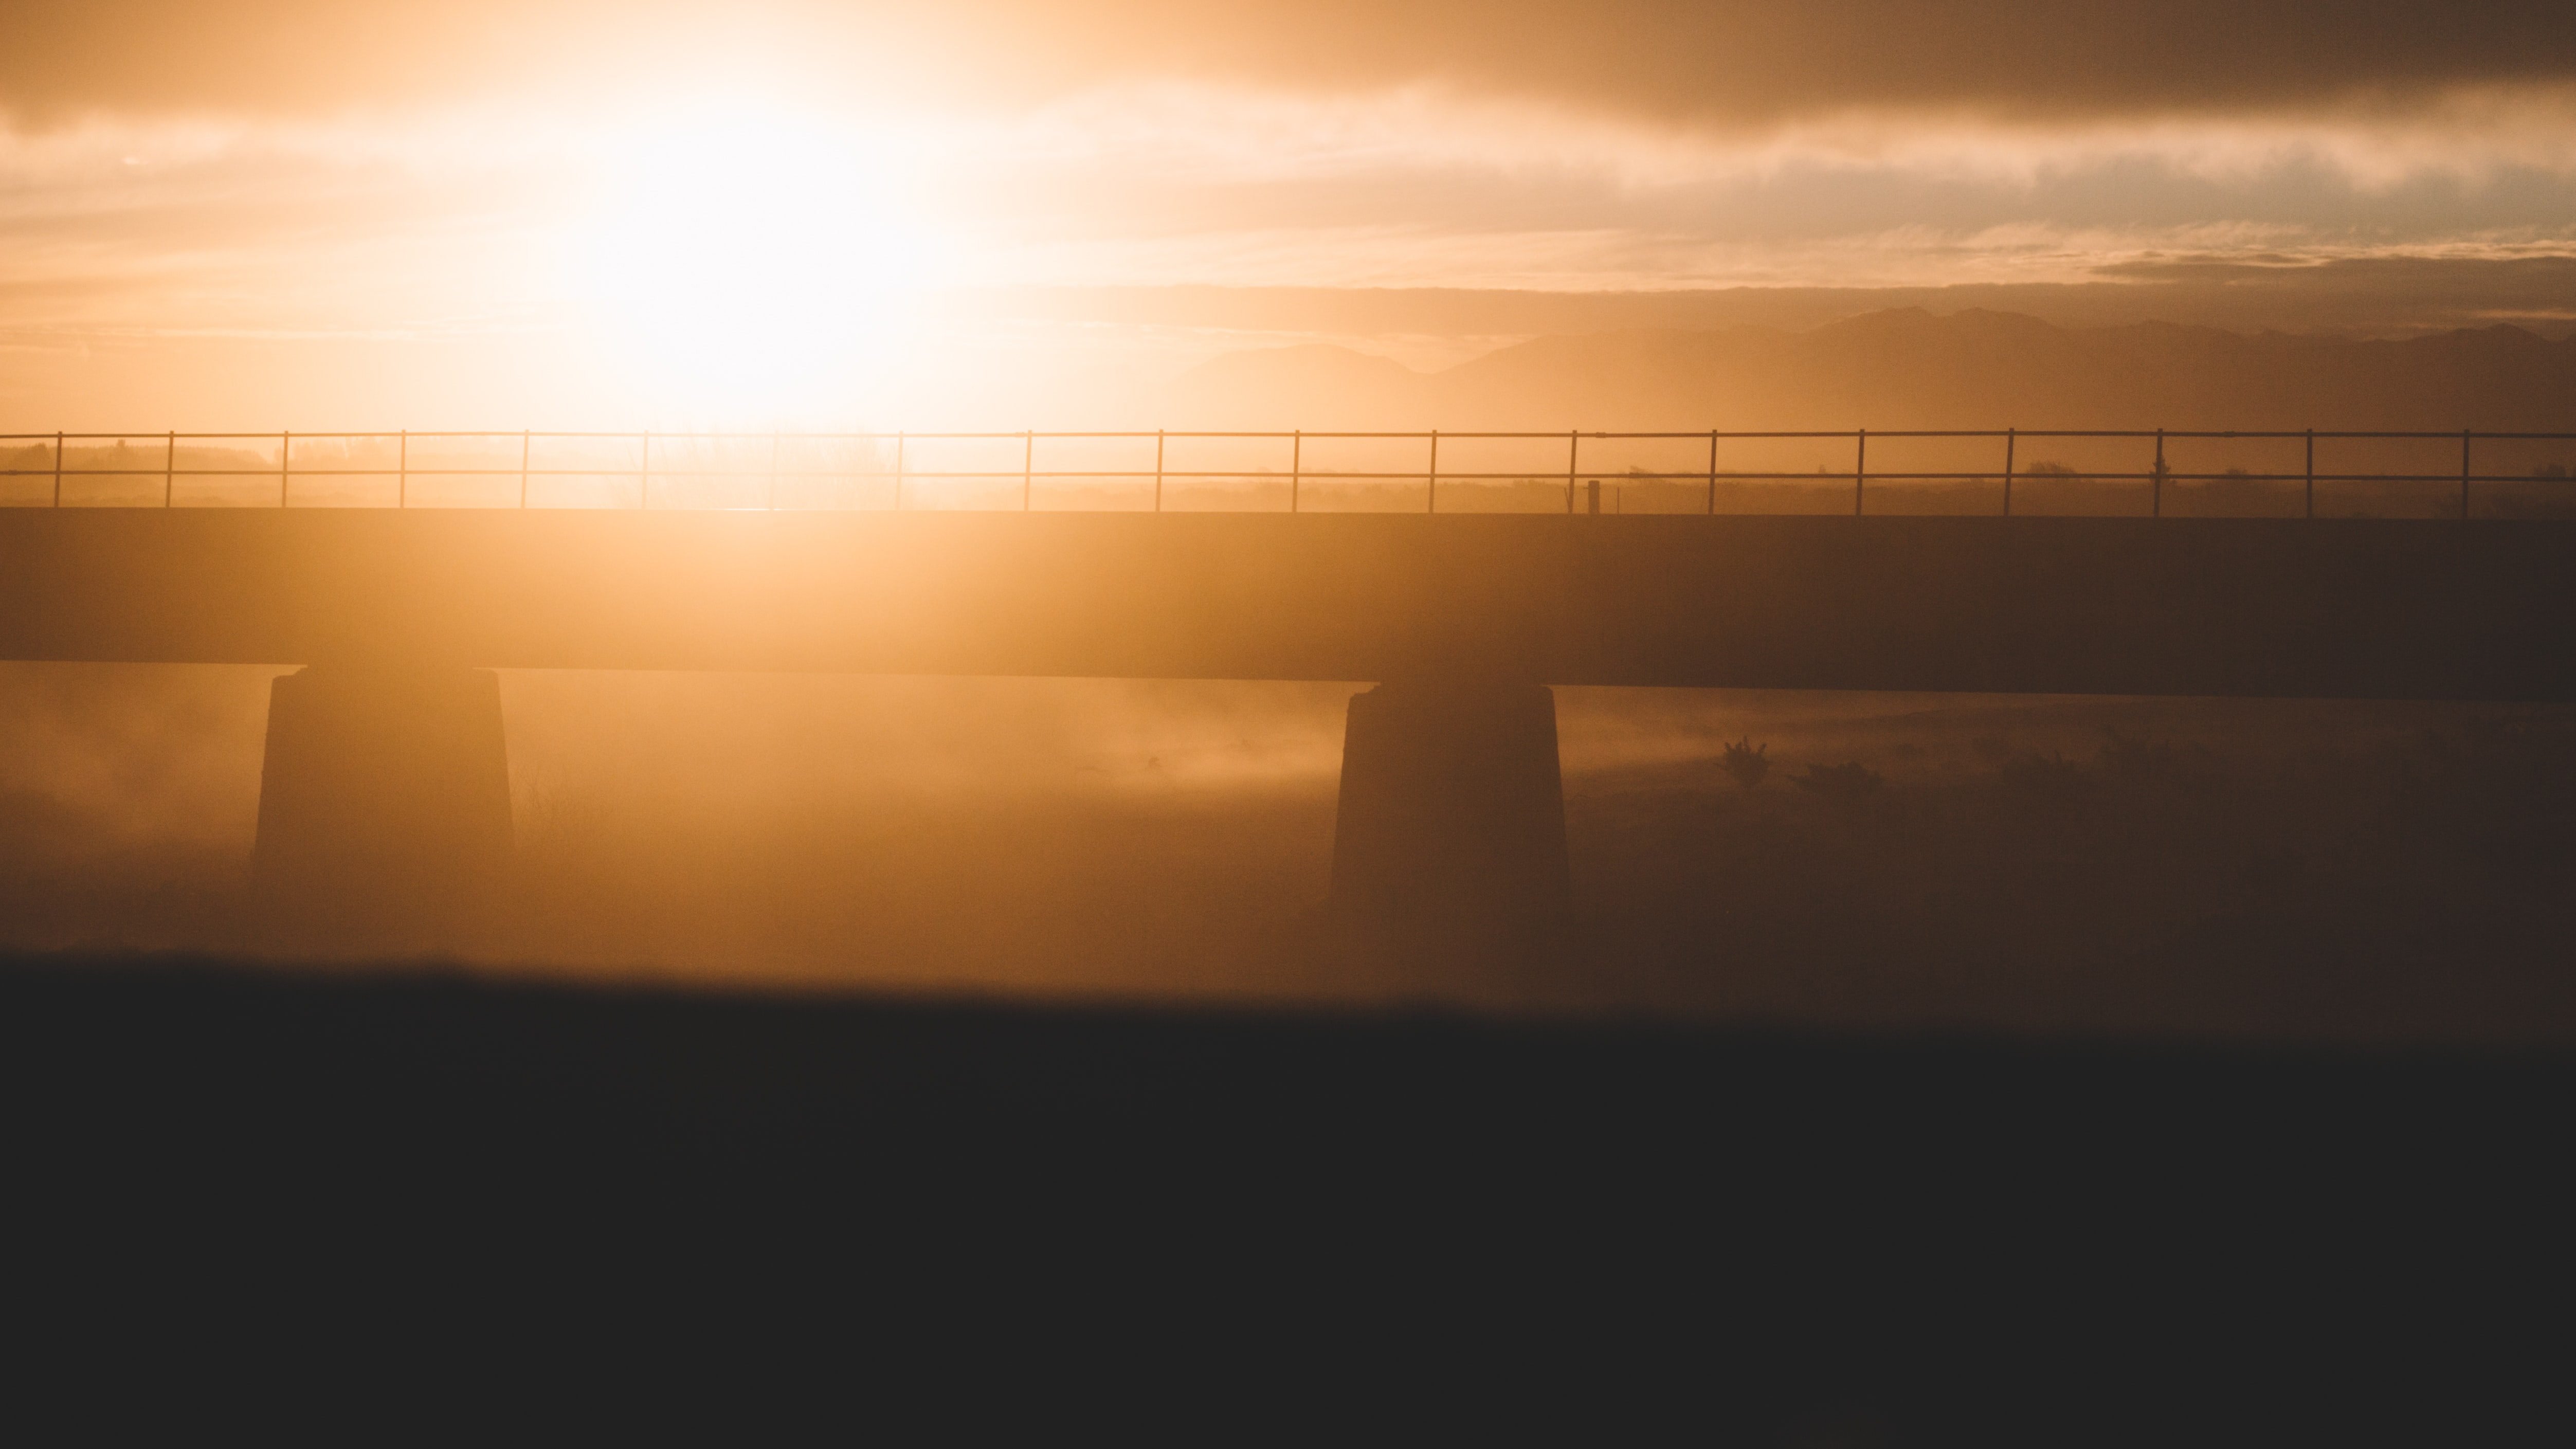 A hazy golden sunset puts a modern bridge into silhouette at Rangitata River.